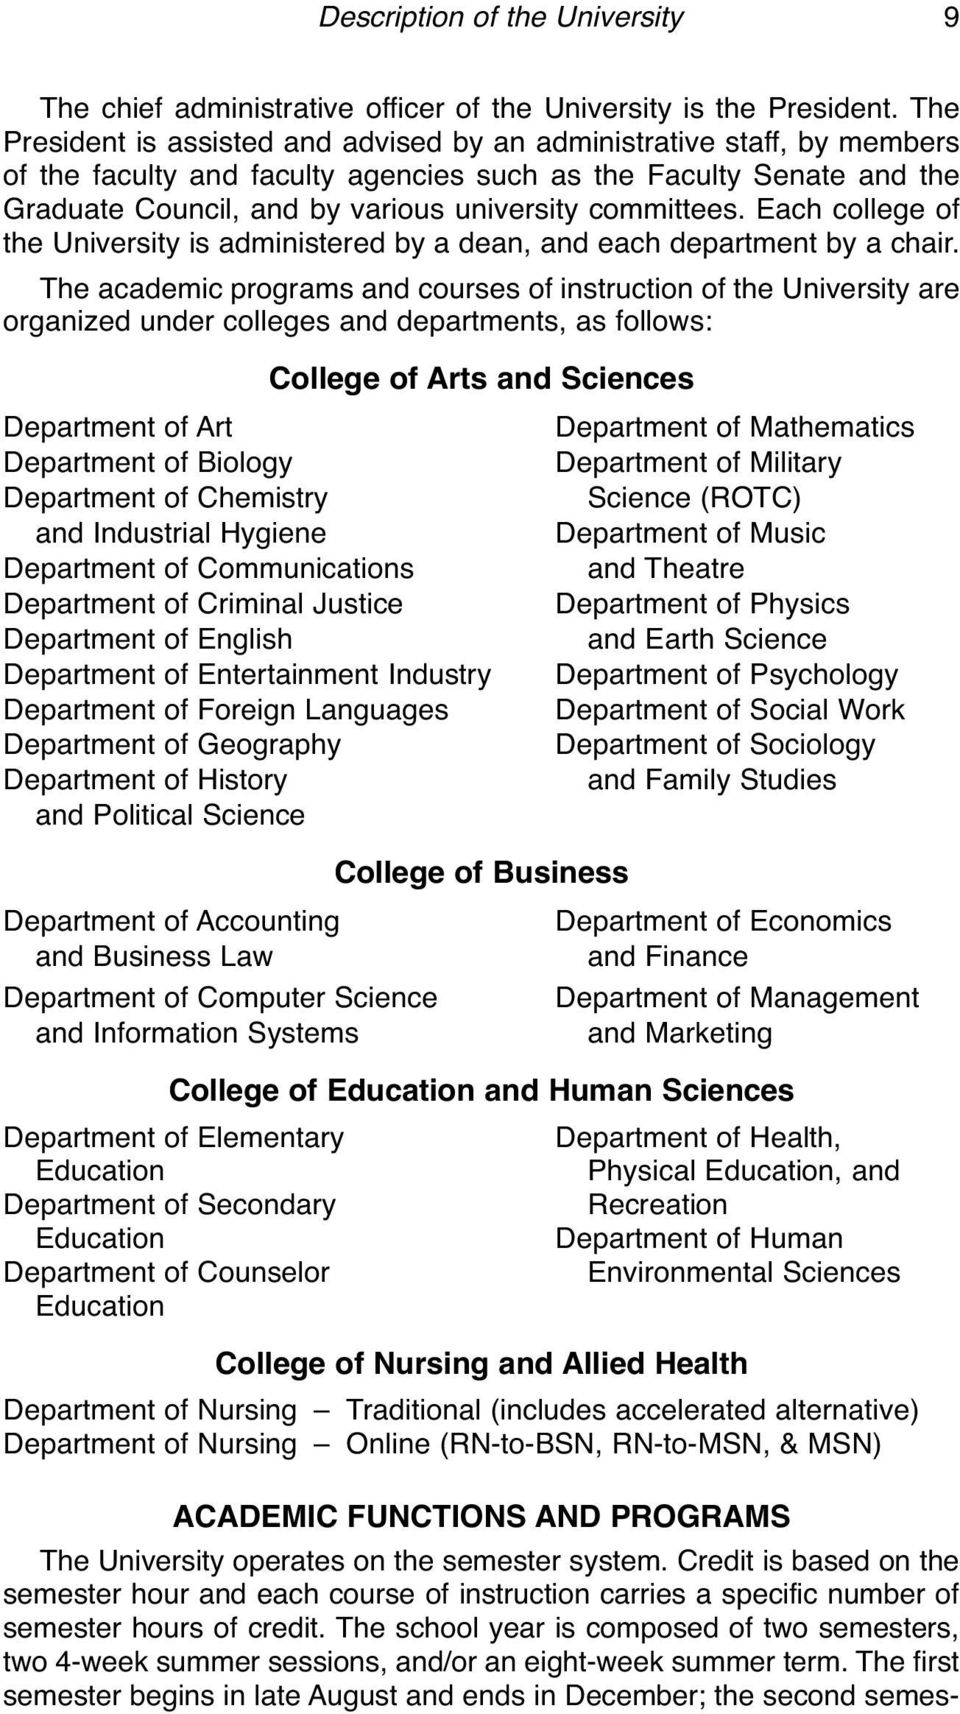 committees. Each college of the University is administered by a dean, and each department by a chair.